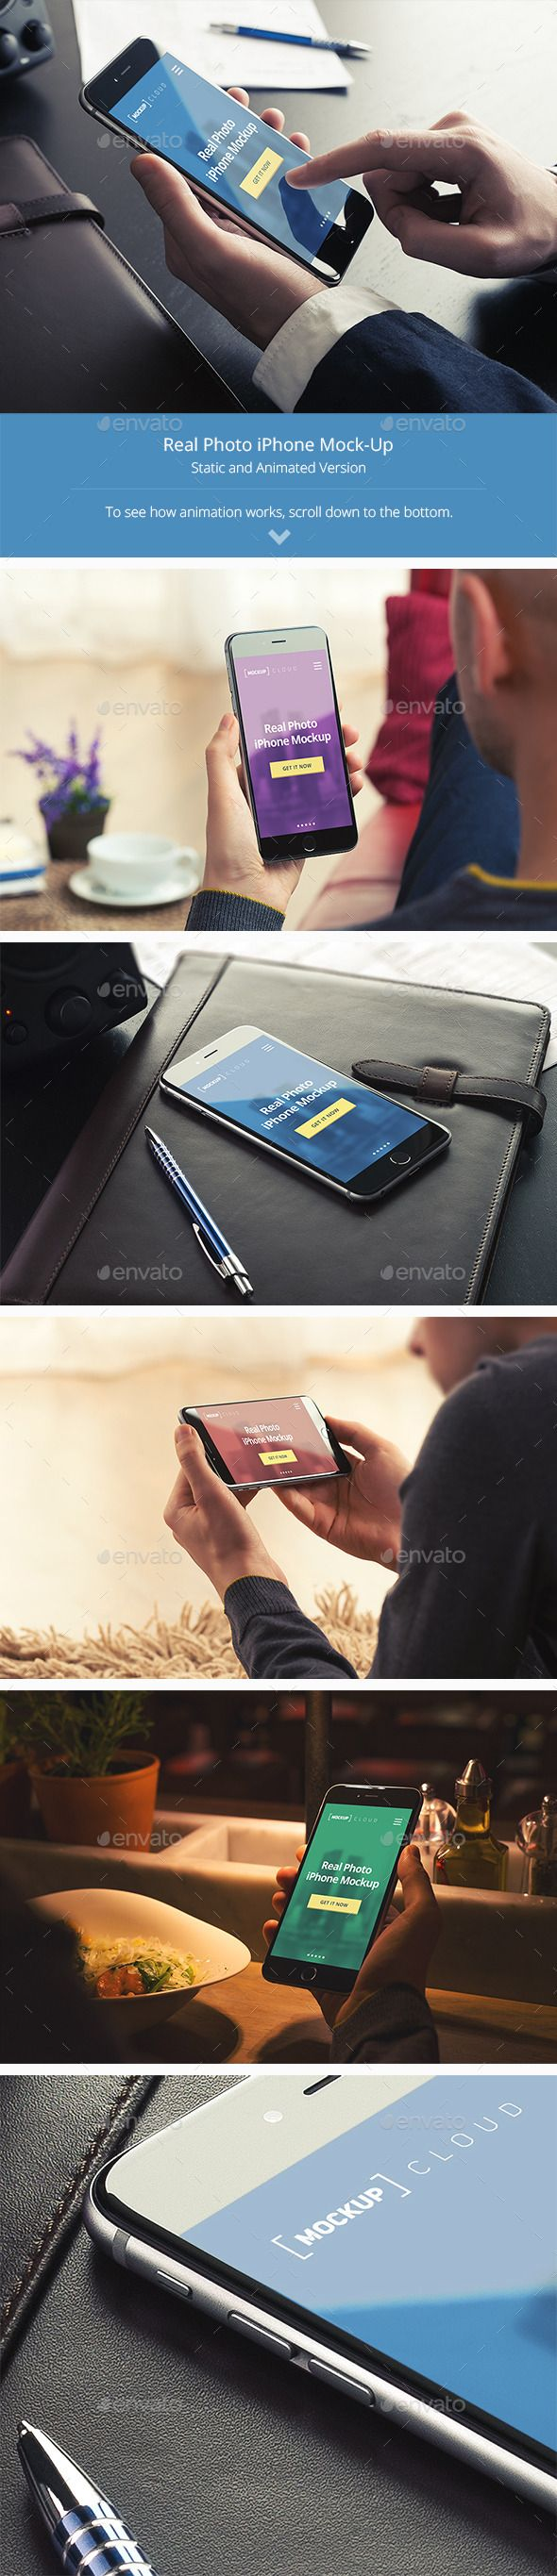 Animated Phone Mock-Up Templates | Download: http://graphicriver.net/item/animated-phone-mockup-templates/10185128?ref=ksioks